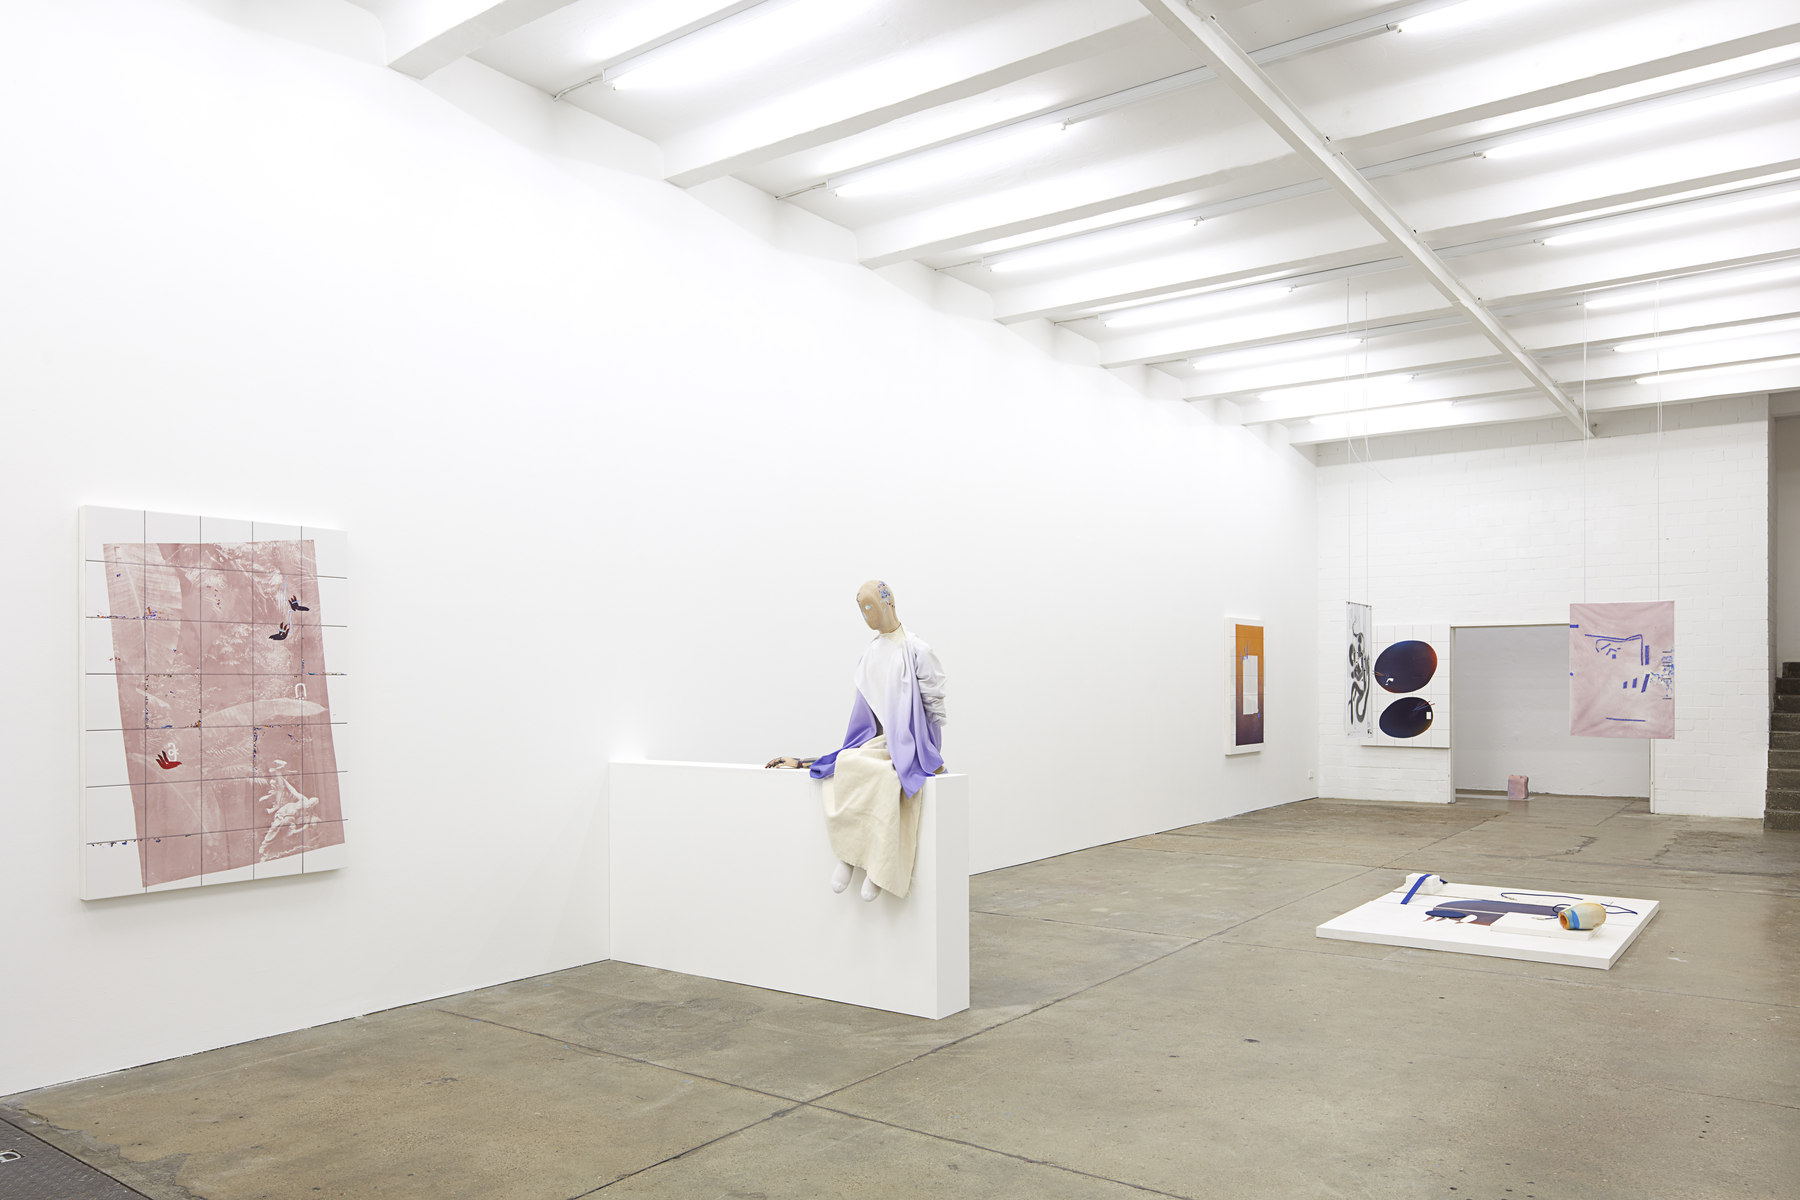 NielsTrannois_K.J.(lethalpsyritual)_SupporticoLopez_Berlin_InstallationView10